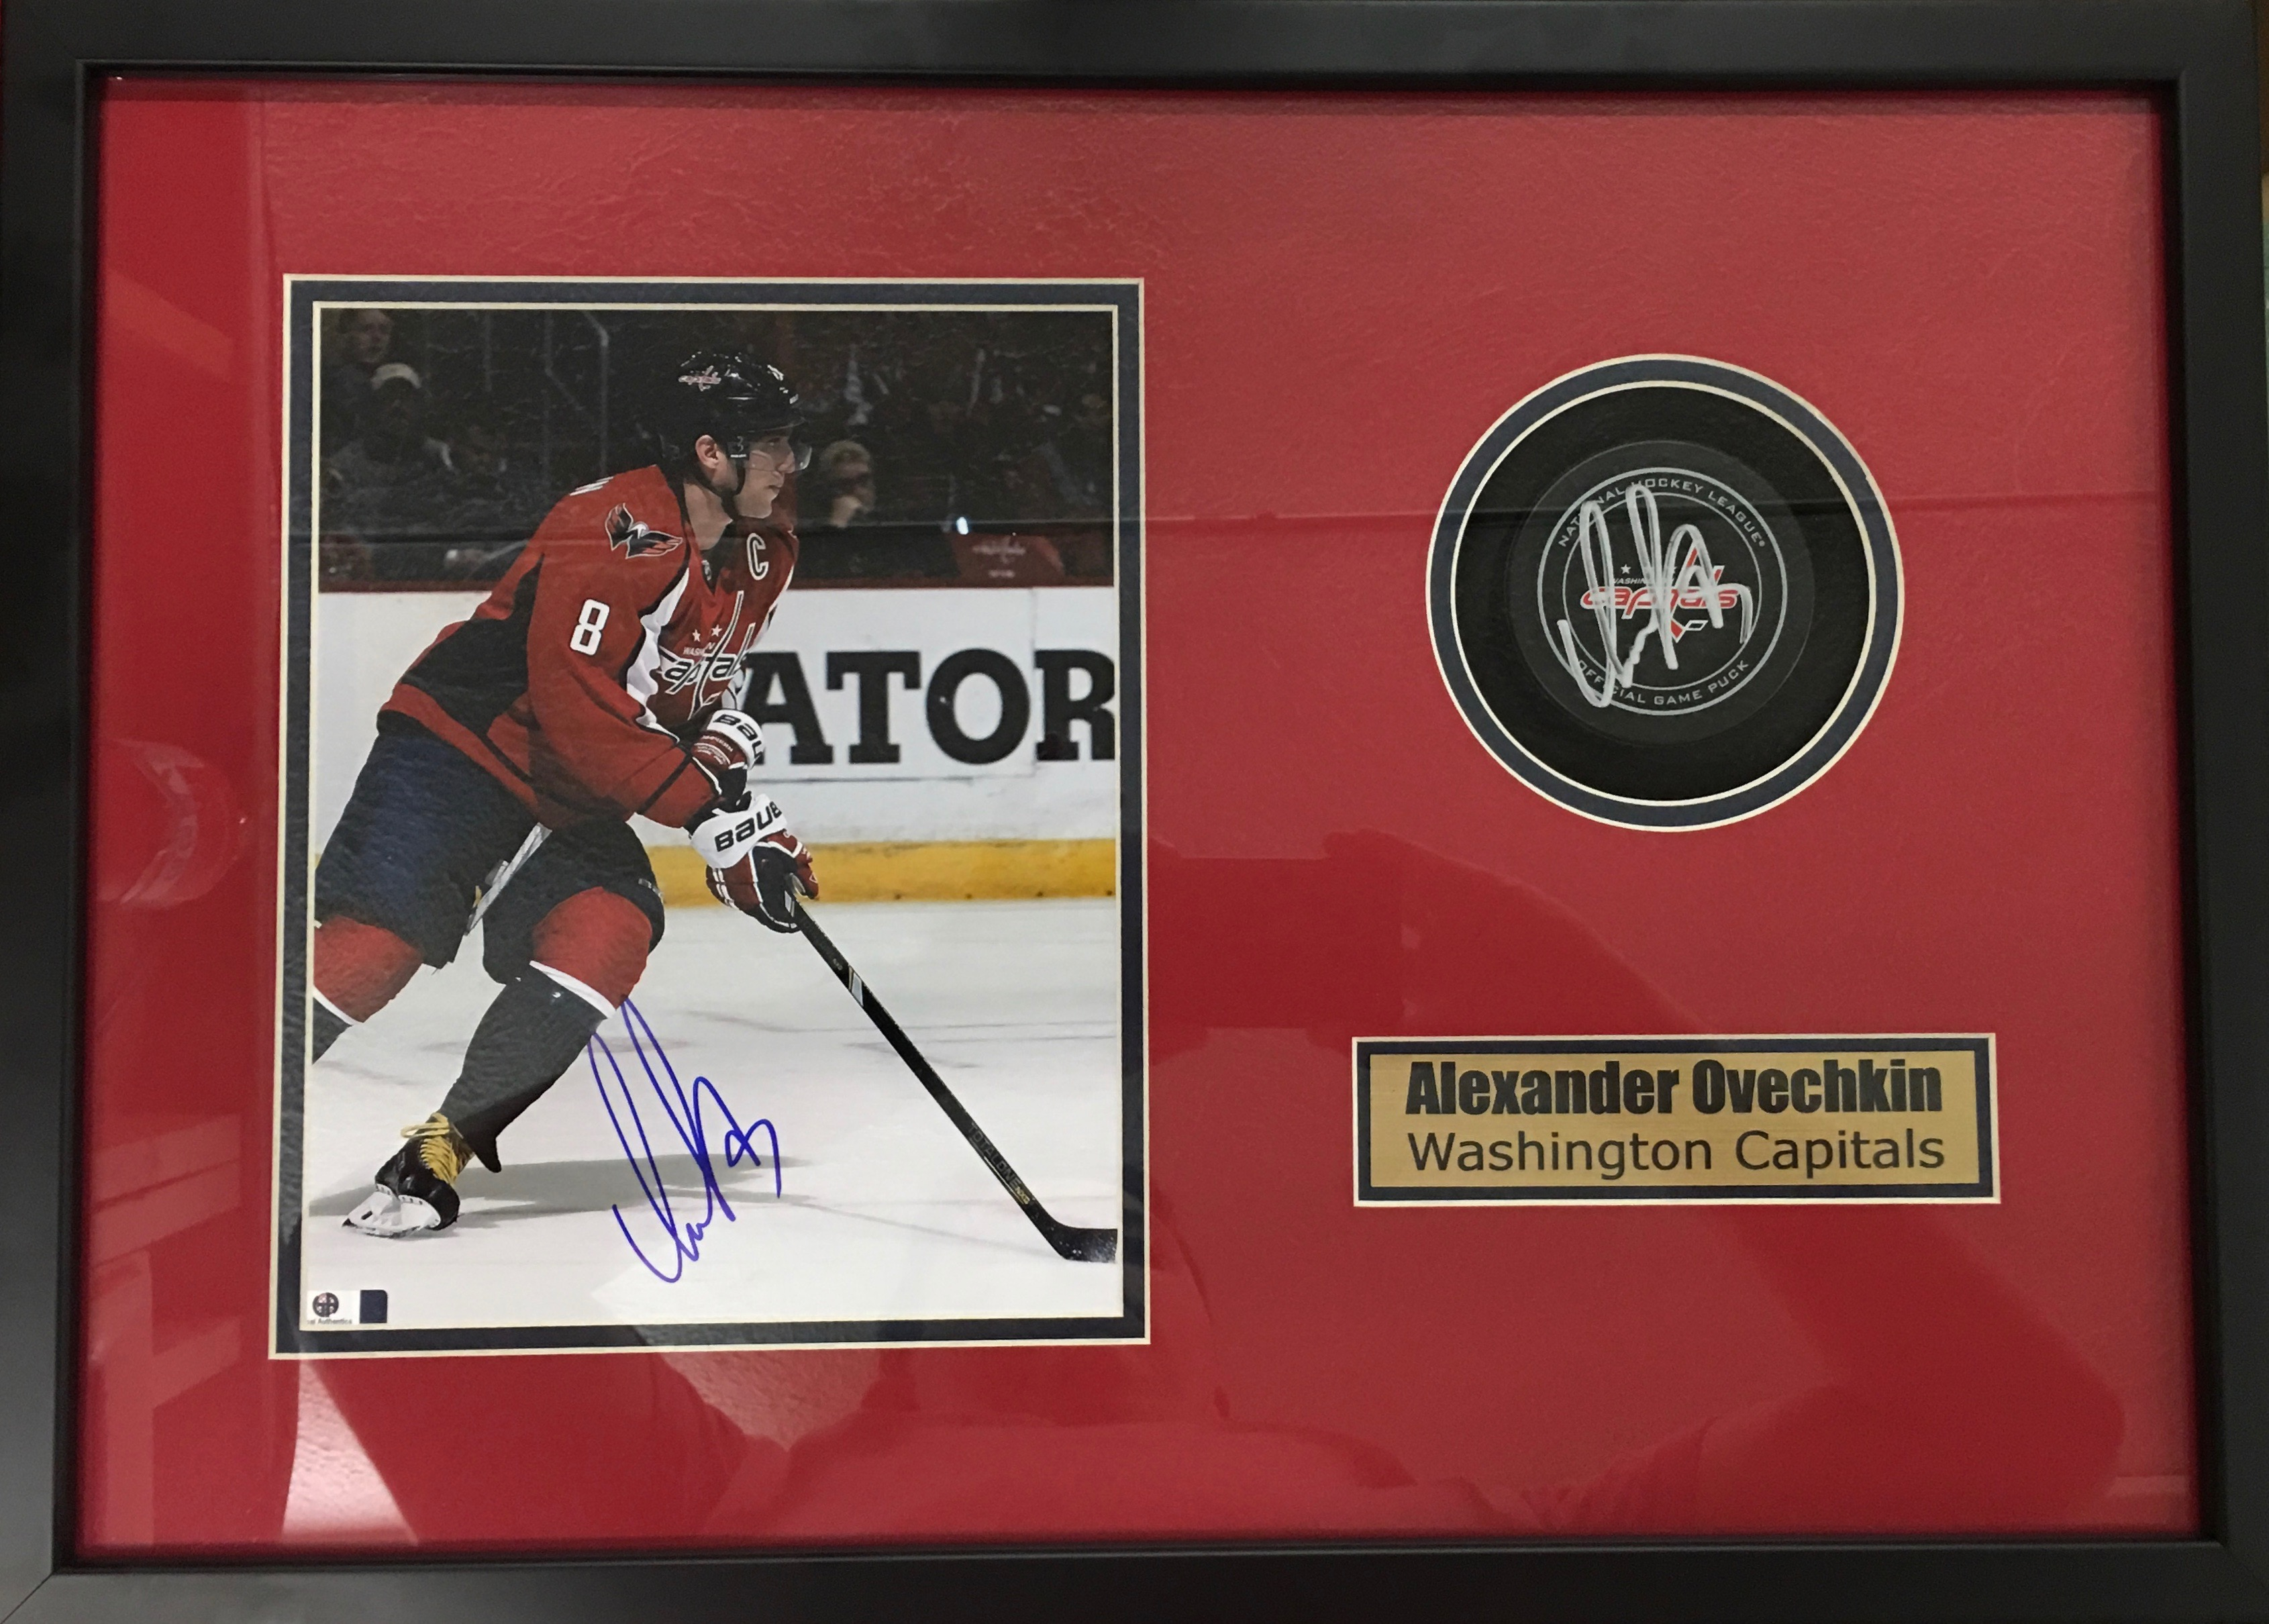 Alexander Ovechkin signed puck and photo shadowbox